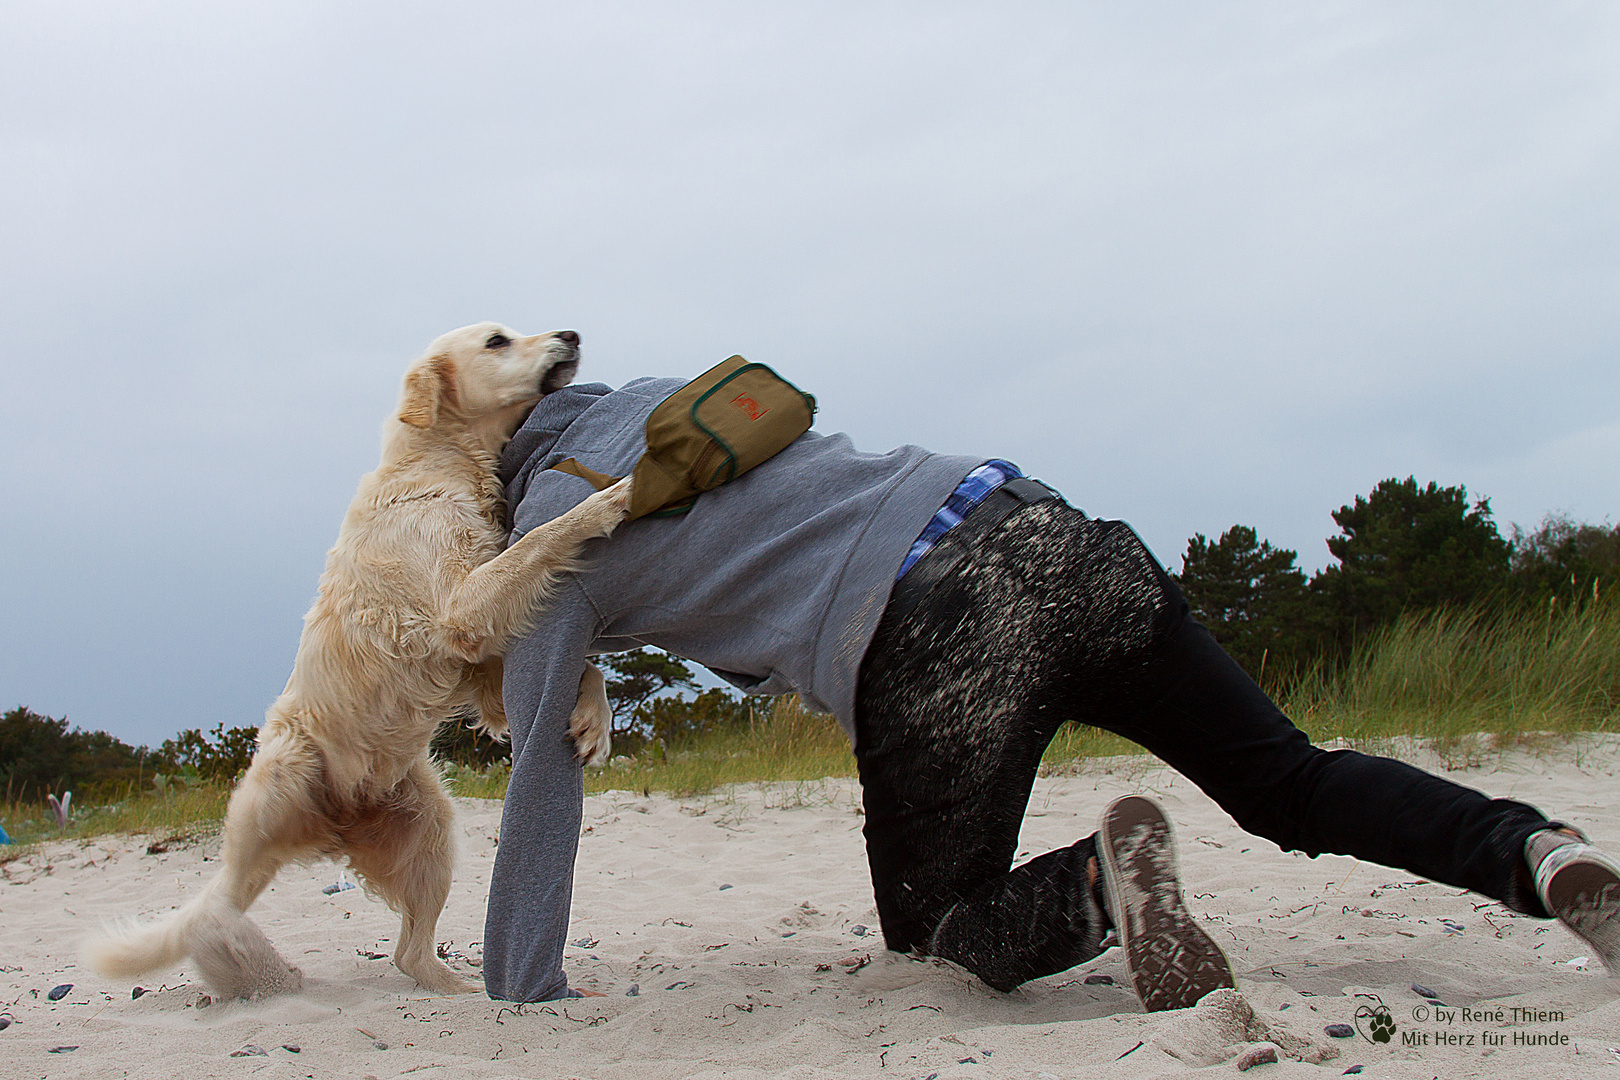 Golden Retriever vs. Mensch